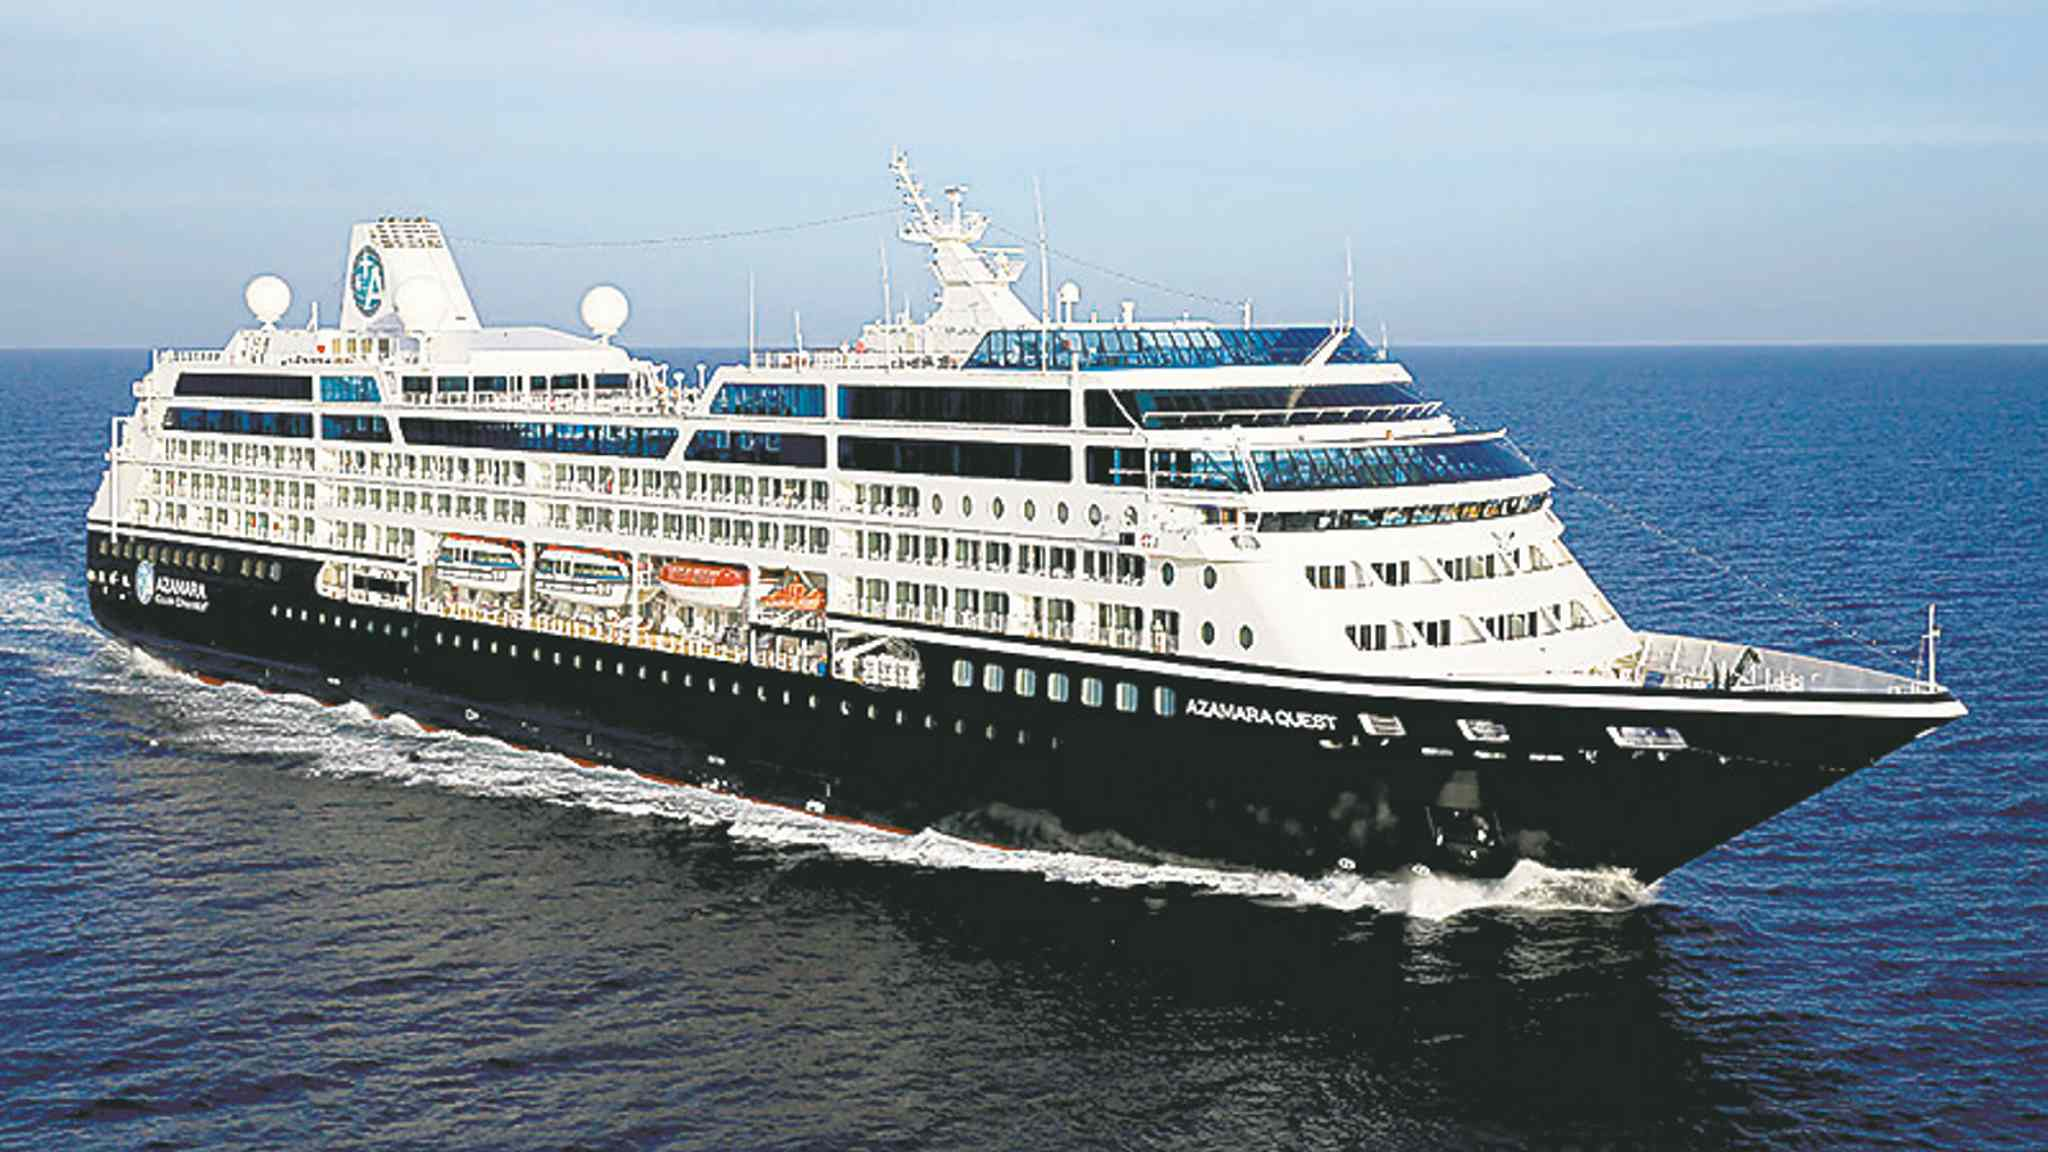 Azamara Quest leaves Miami on March 16 for an 11-day tour of the Caribbean, with stops including Guadeloupe, Dominica and St. Barts.